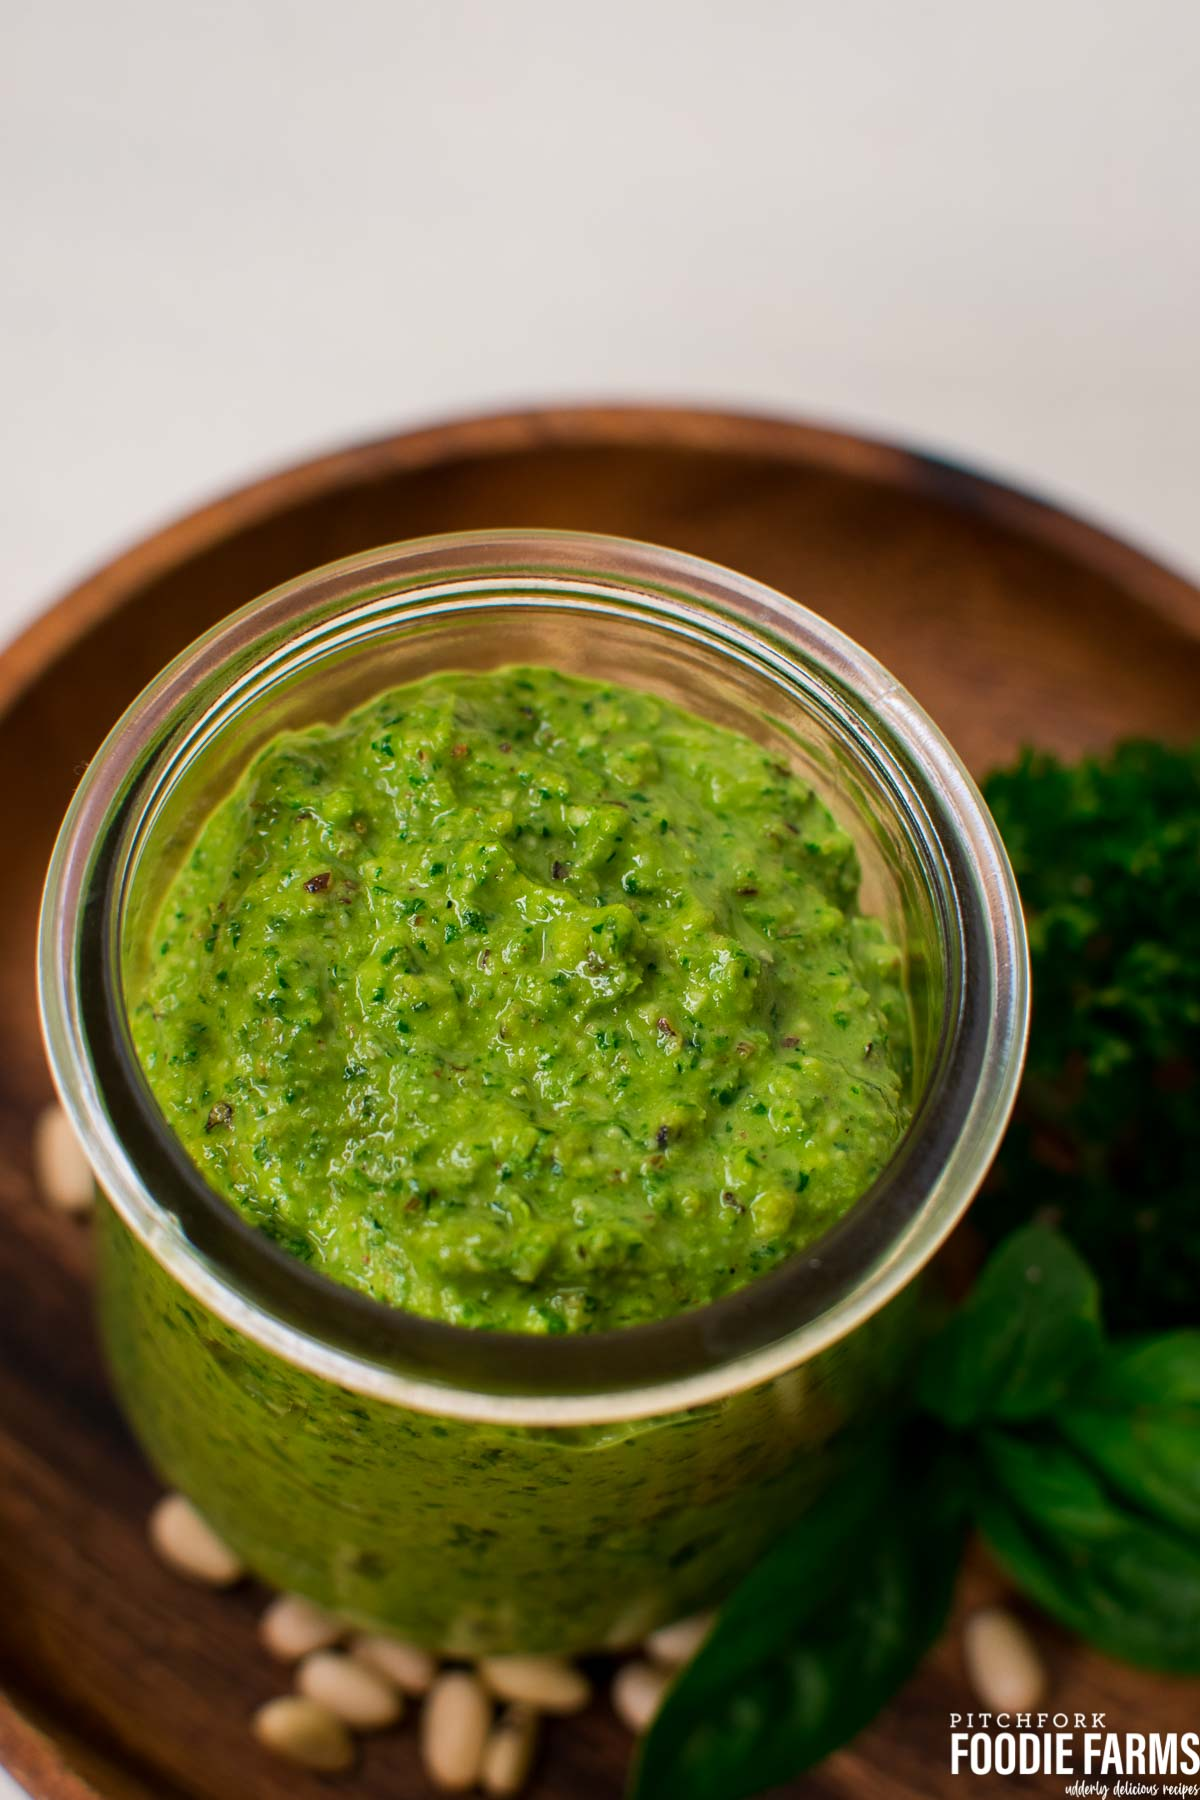 A glass jar with green pesto on a wooden plate.